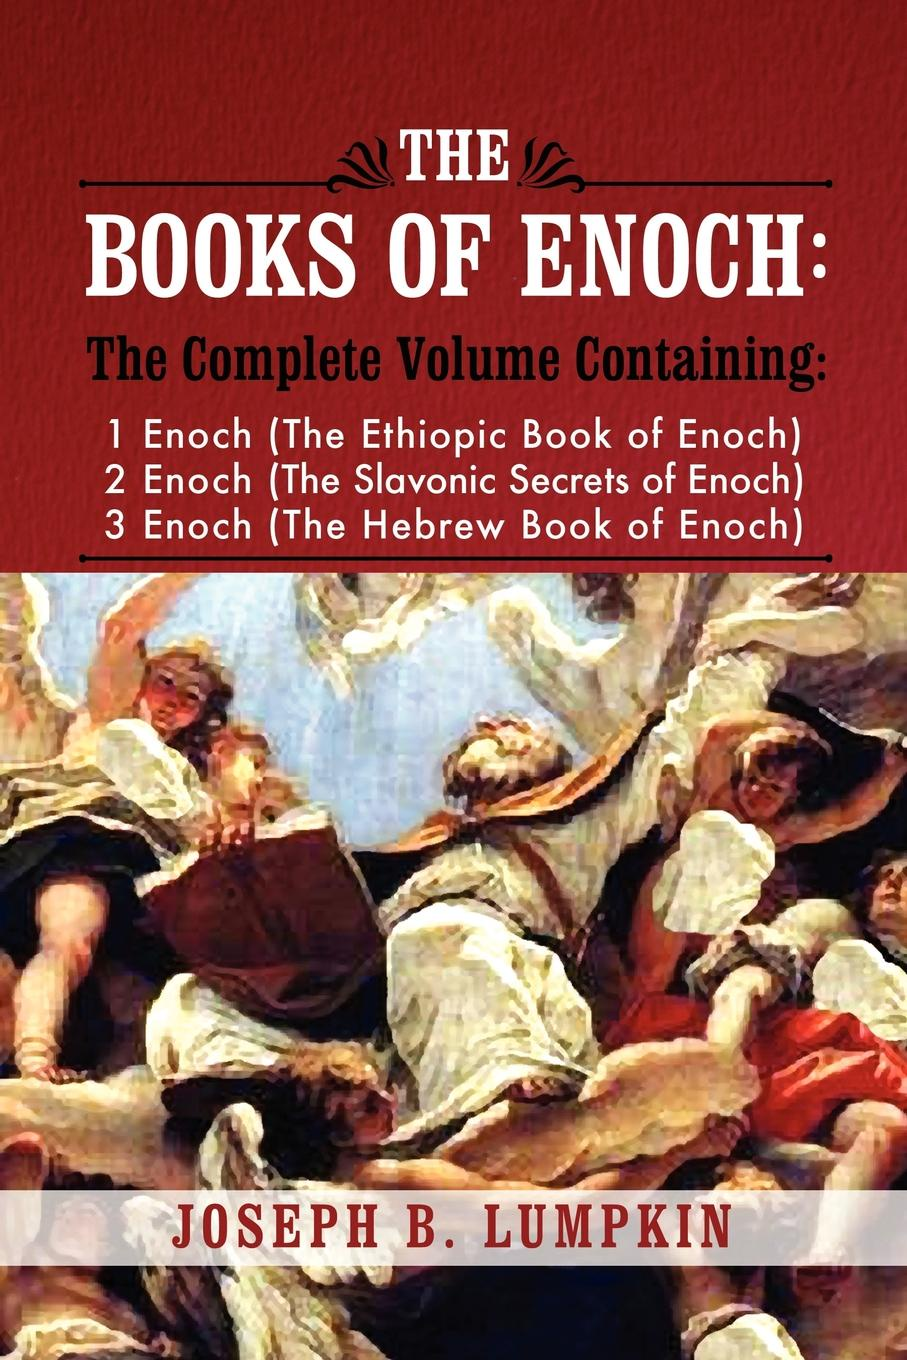 Joseph B. Lumpkin The Books of Enoch. A Complete Volume Containing 1 Enoch (the Ethiopic Book of Enoch), 2 Enoch (the Slavonic Secrets of Enoch), and 3 Enoc